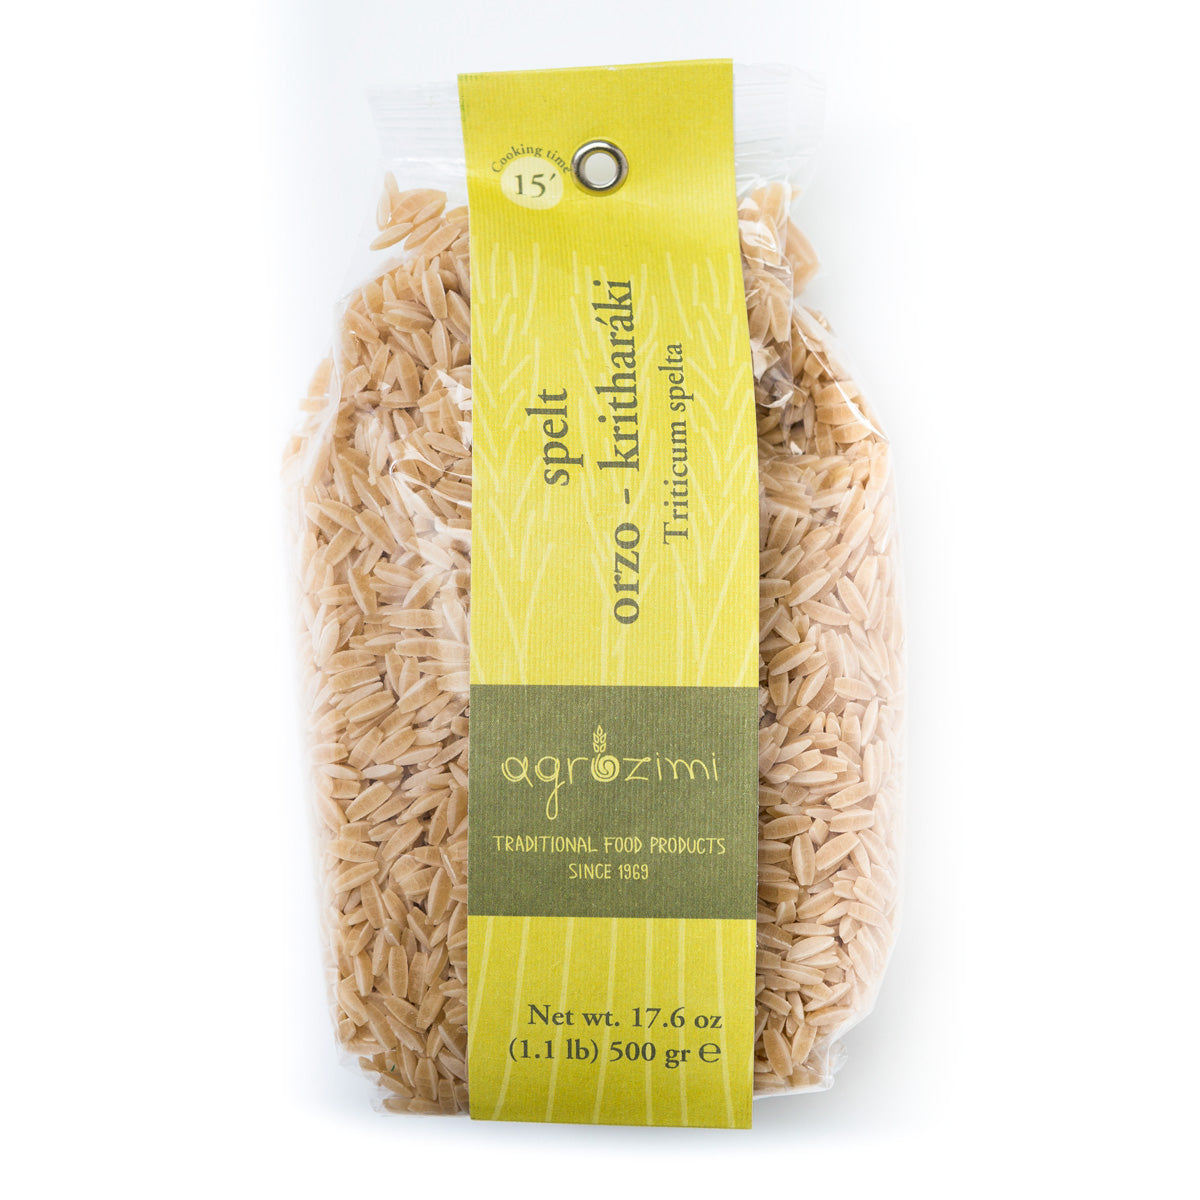 Agrozimi Traditional Spelt Orzo Kritharaki. All-natural Artisanal Pasta  Edit alt text